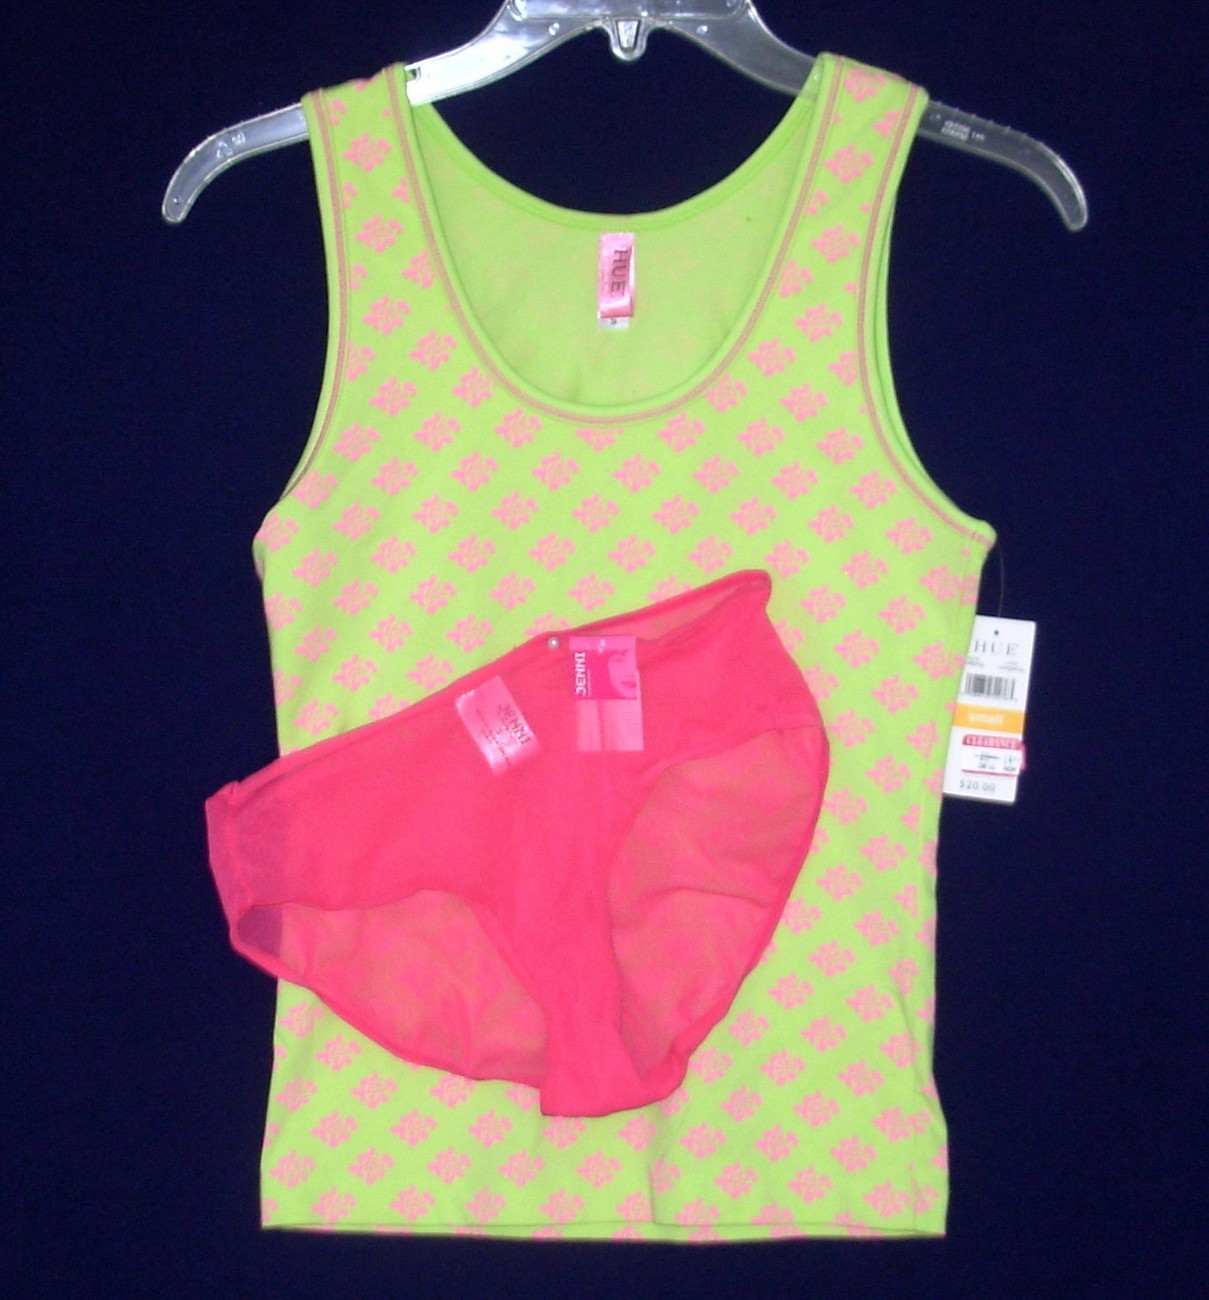 New HUE Sleep Tank Top JENNI Panties Lime Hot Pink SMALL